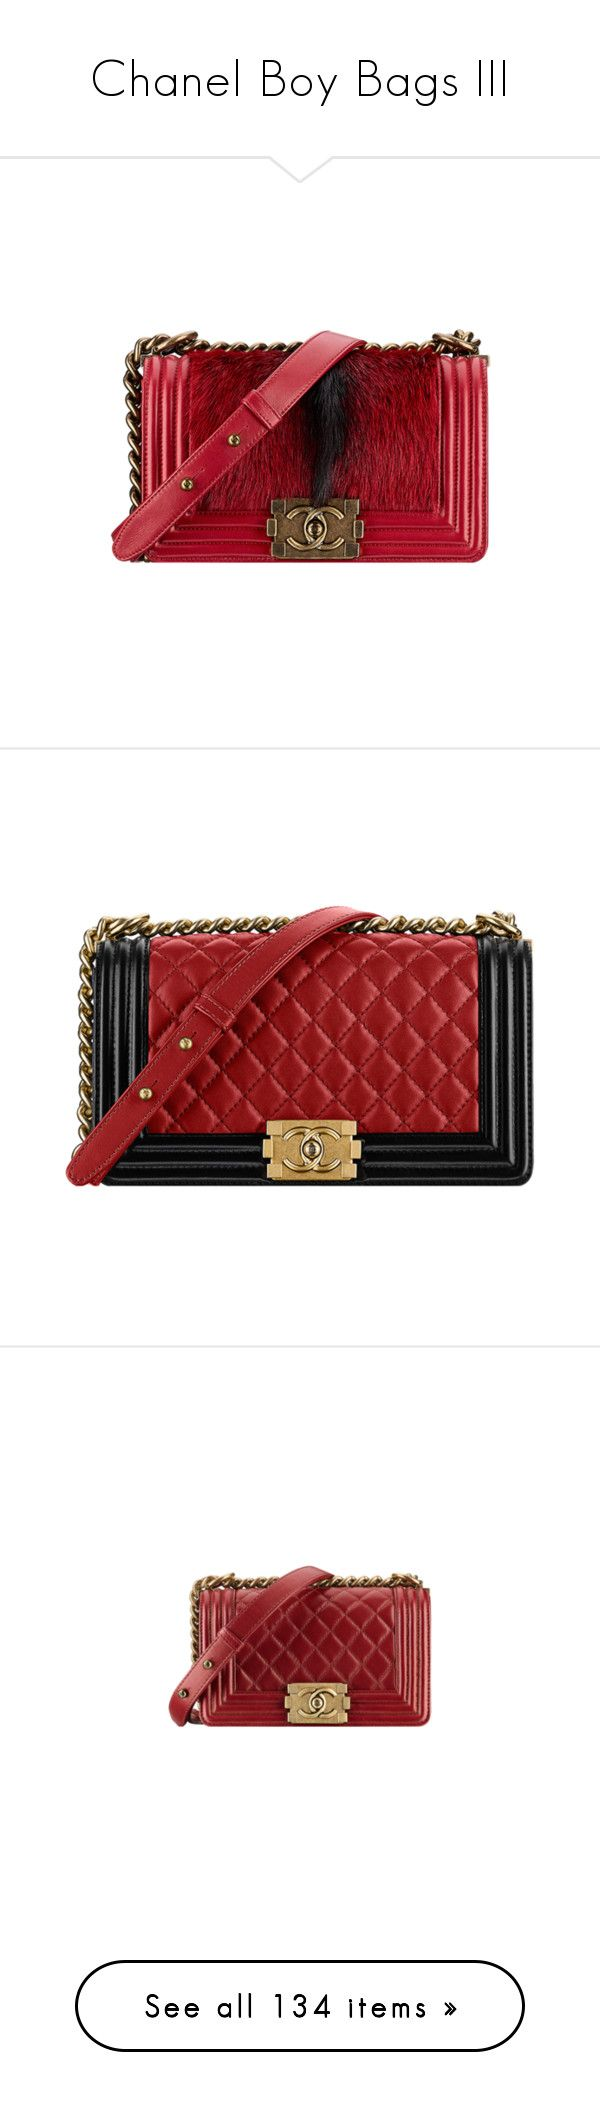 """""""Chanel Boy Bags III"""" by sakuragirl ❤ liked on Polyvore featuring bags, handbags, chanel, chanel bags, bolsa, chanel handbags, handbag purse, red handbags, long purse and purse bag"""